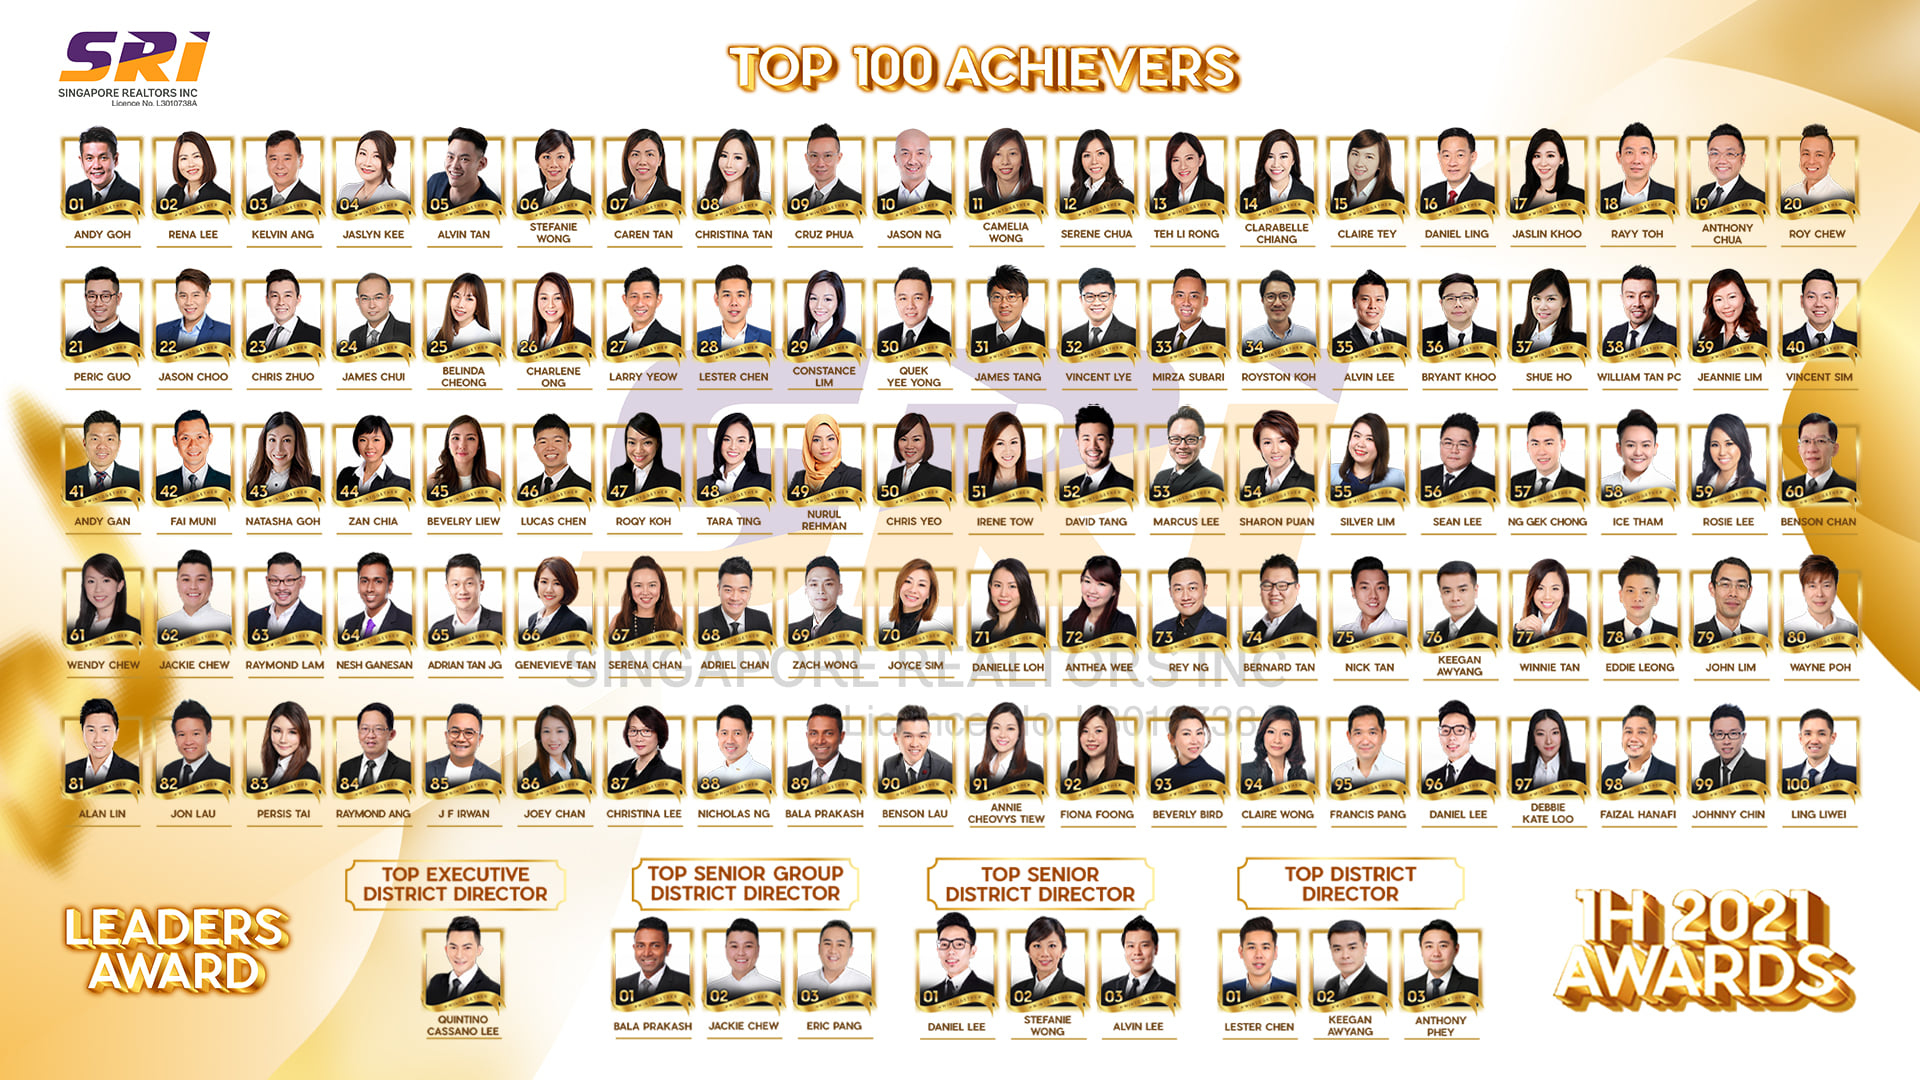 SRI Top Achievers for 1H2021